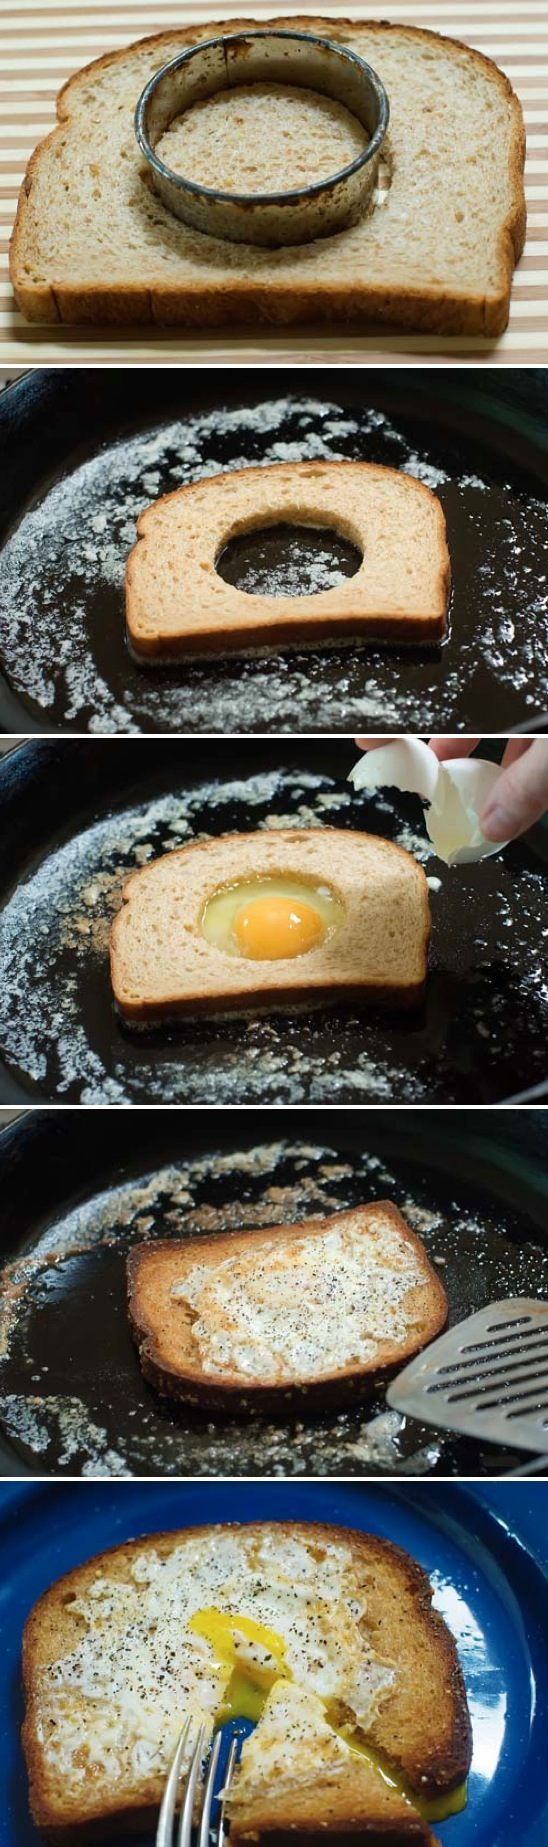 Easy Breakfast Ideas Egg in a Hole...I've made a few of these myself and they…